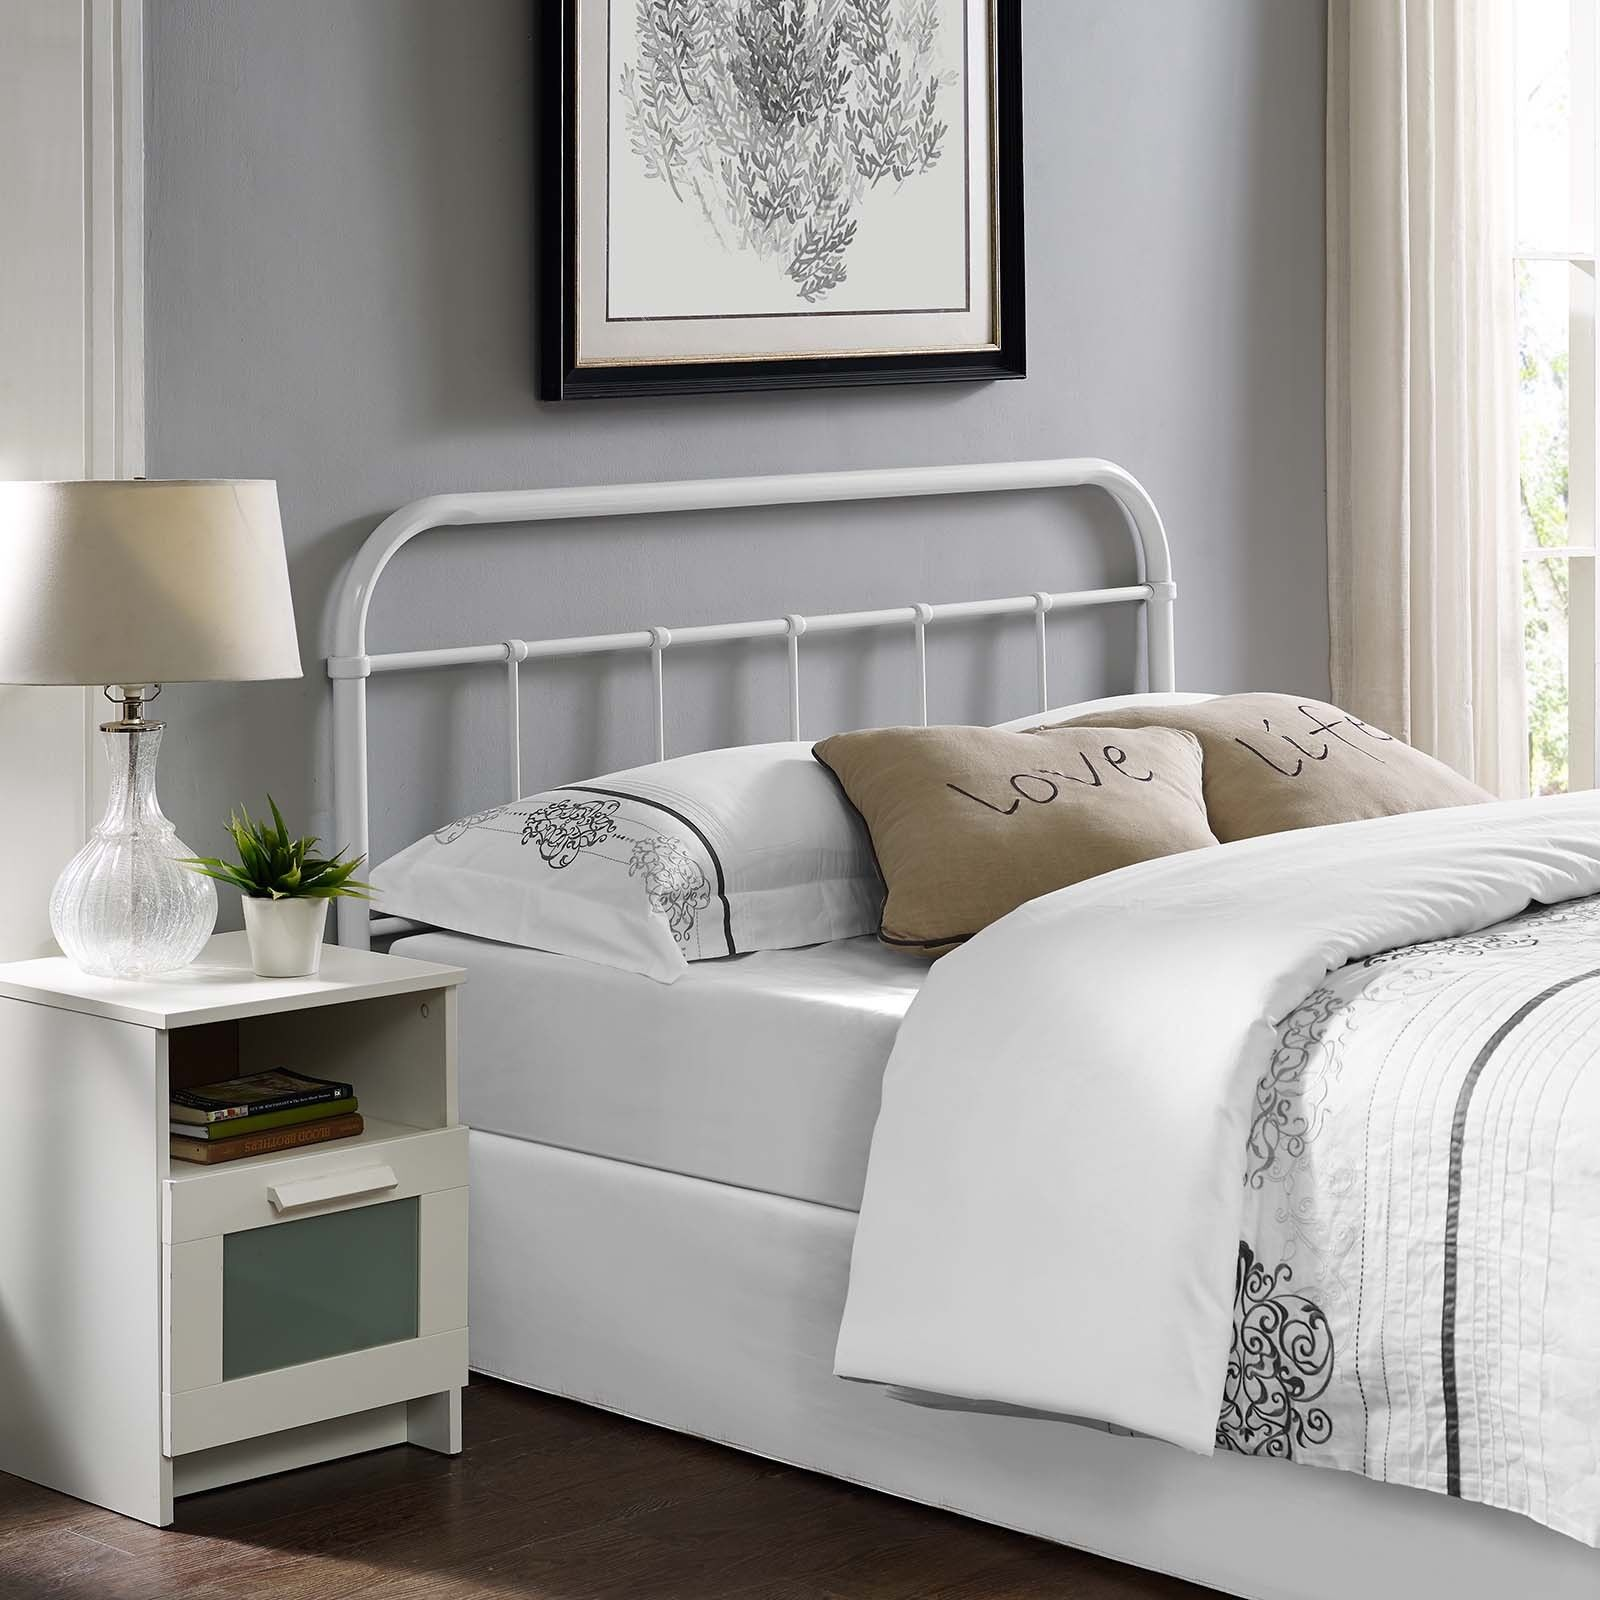 Details About Bedroom Furniture Rustic Modern Farmhouse White Steel Metal Queen Size Headboard